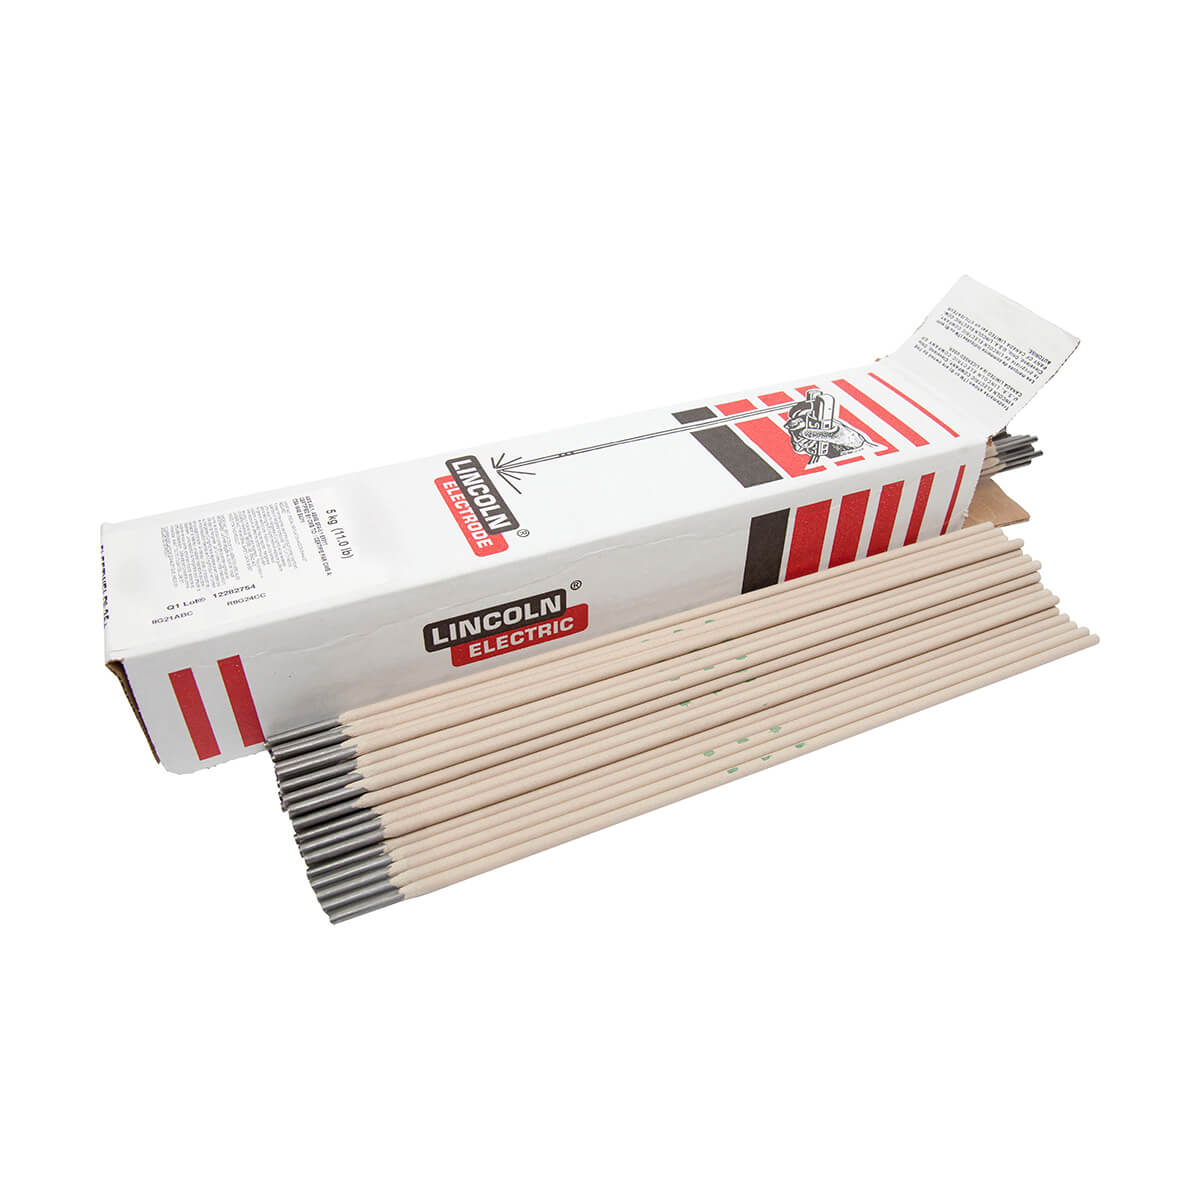 LINCOLN ELECTRIC Fleetweld 5P+ welding electrodes - 1/8-in x 14-in